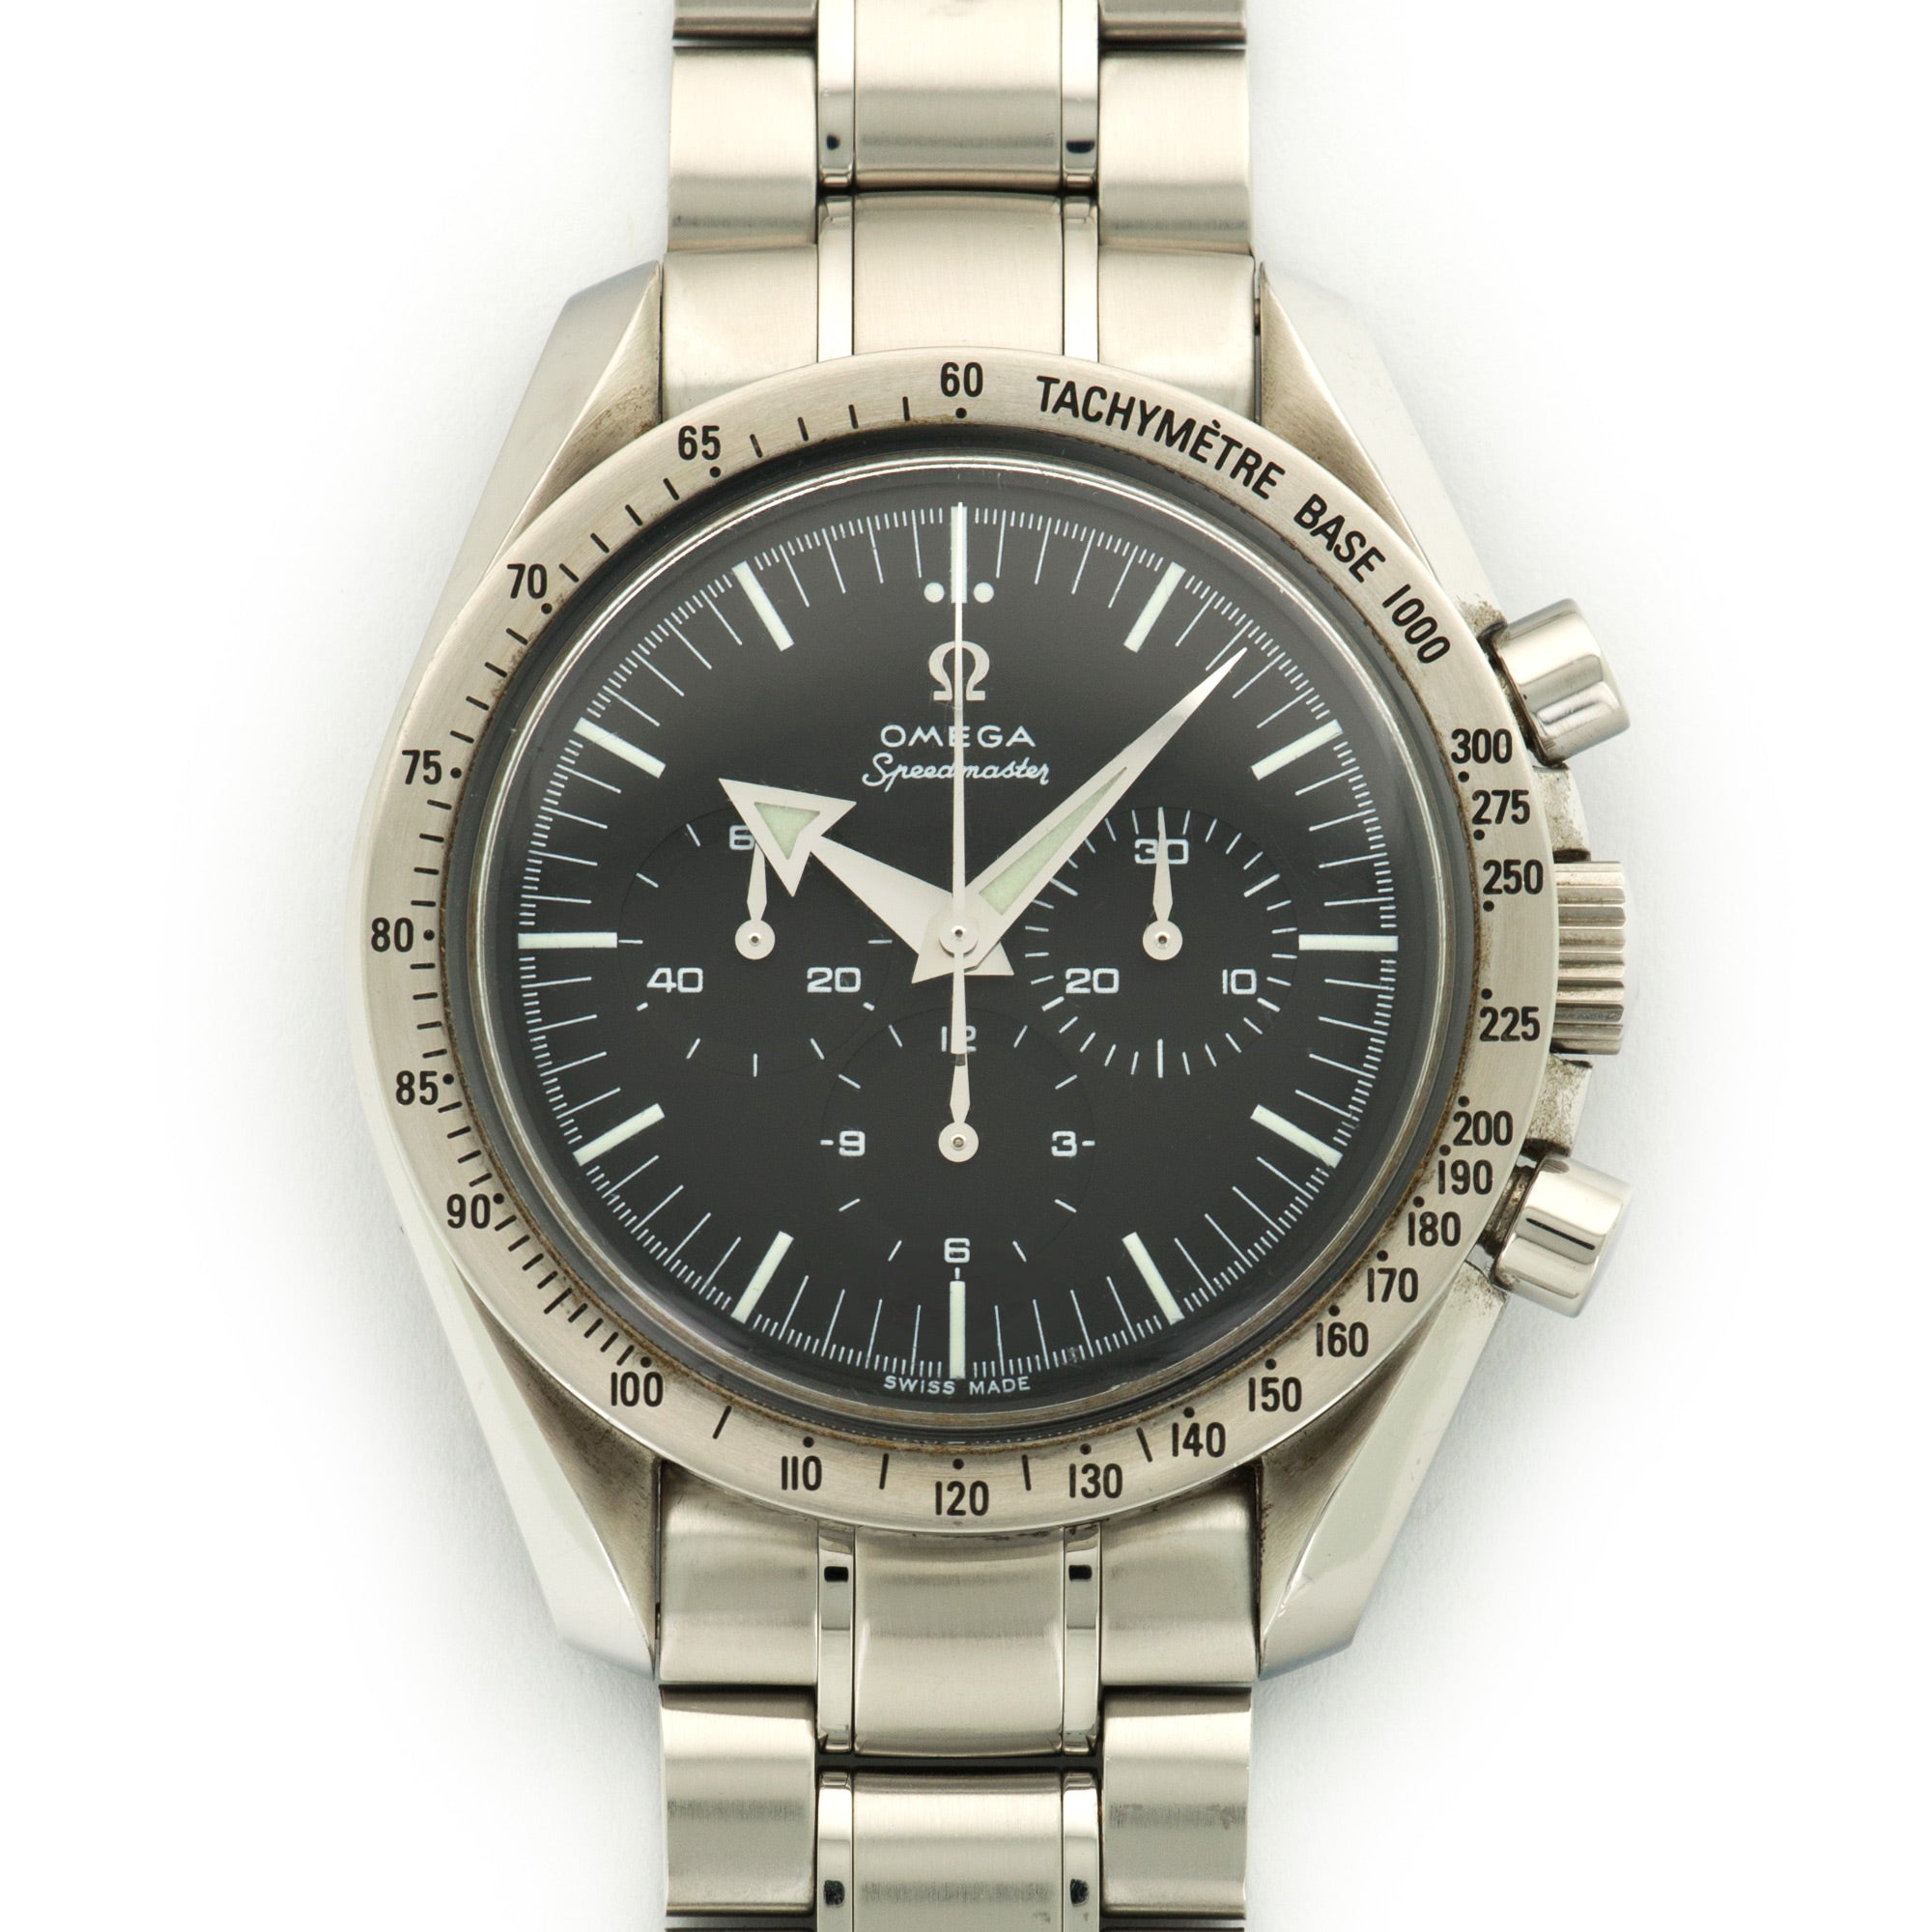 Omega Speedmaster 35945000 Steel  Likely Never Polished, Original Finish Gents Steel Black 42mm Manual 2000s Steel Bracelet Original Warranty Paper